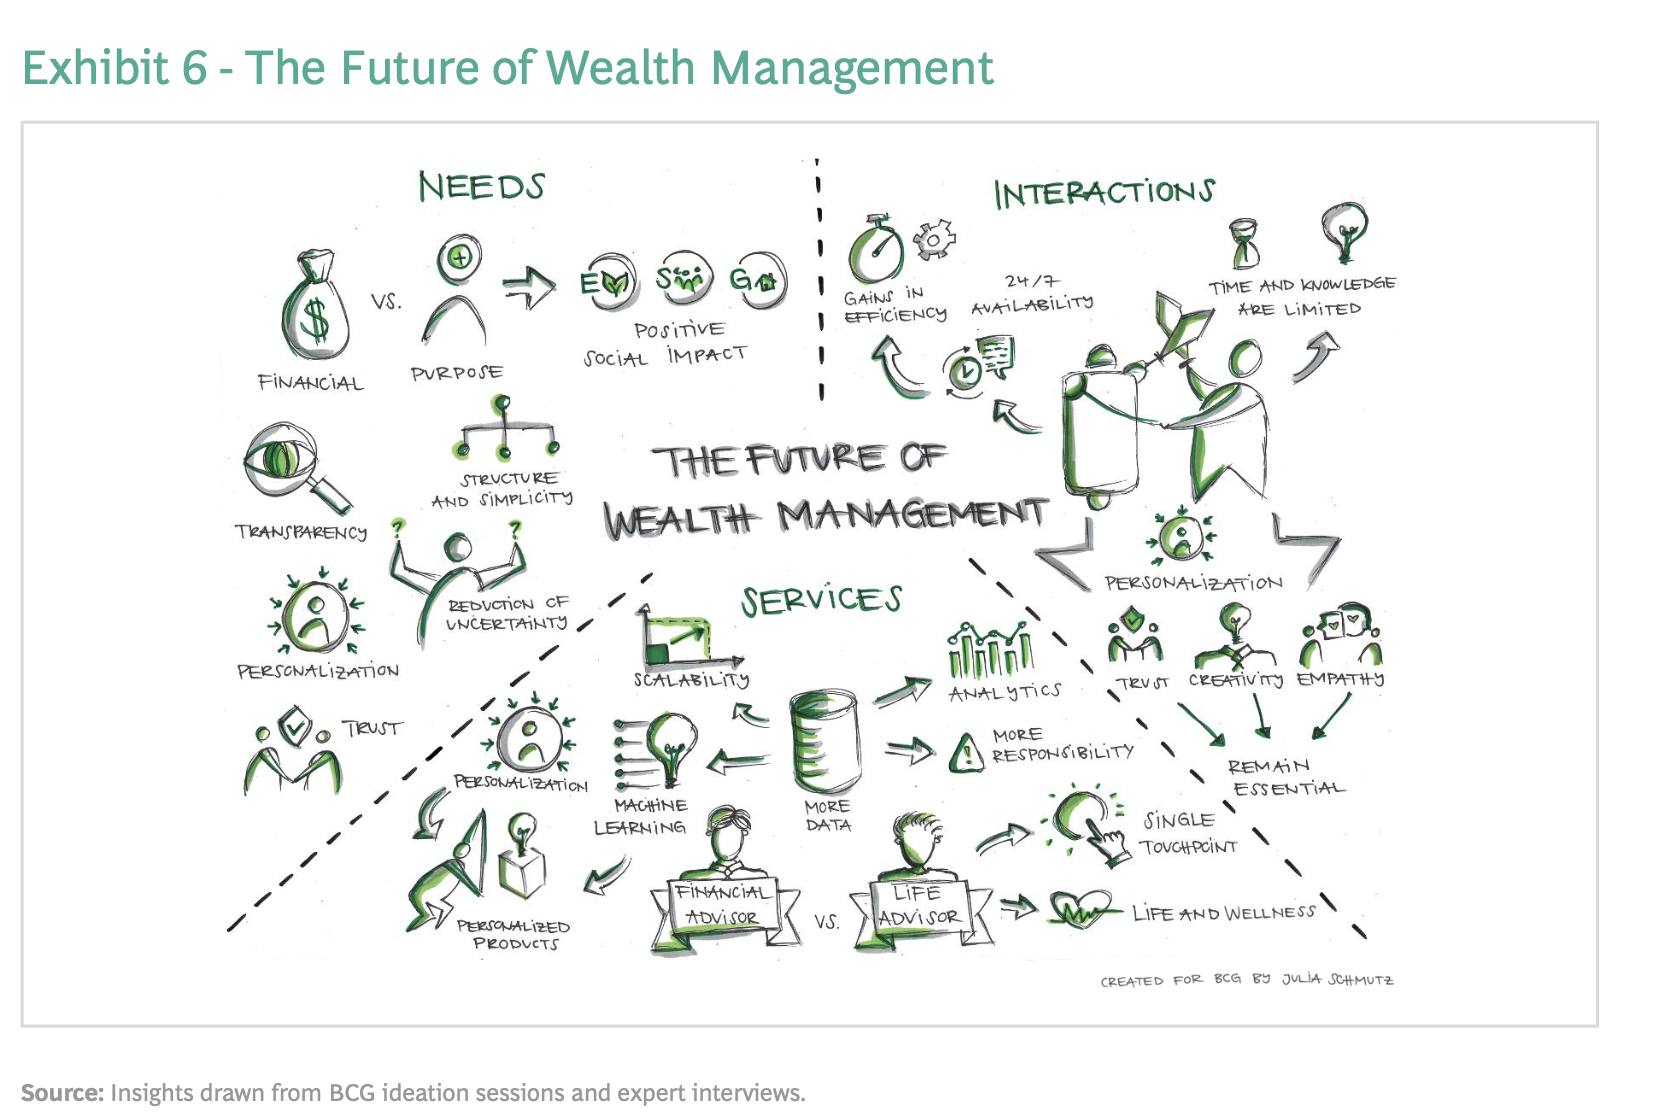 Global Wealth 2020: The Future of Wealth Management 2